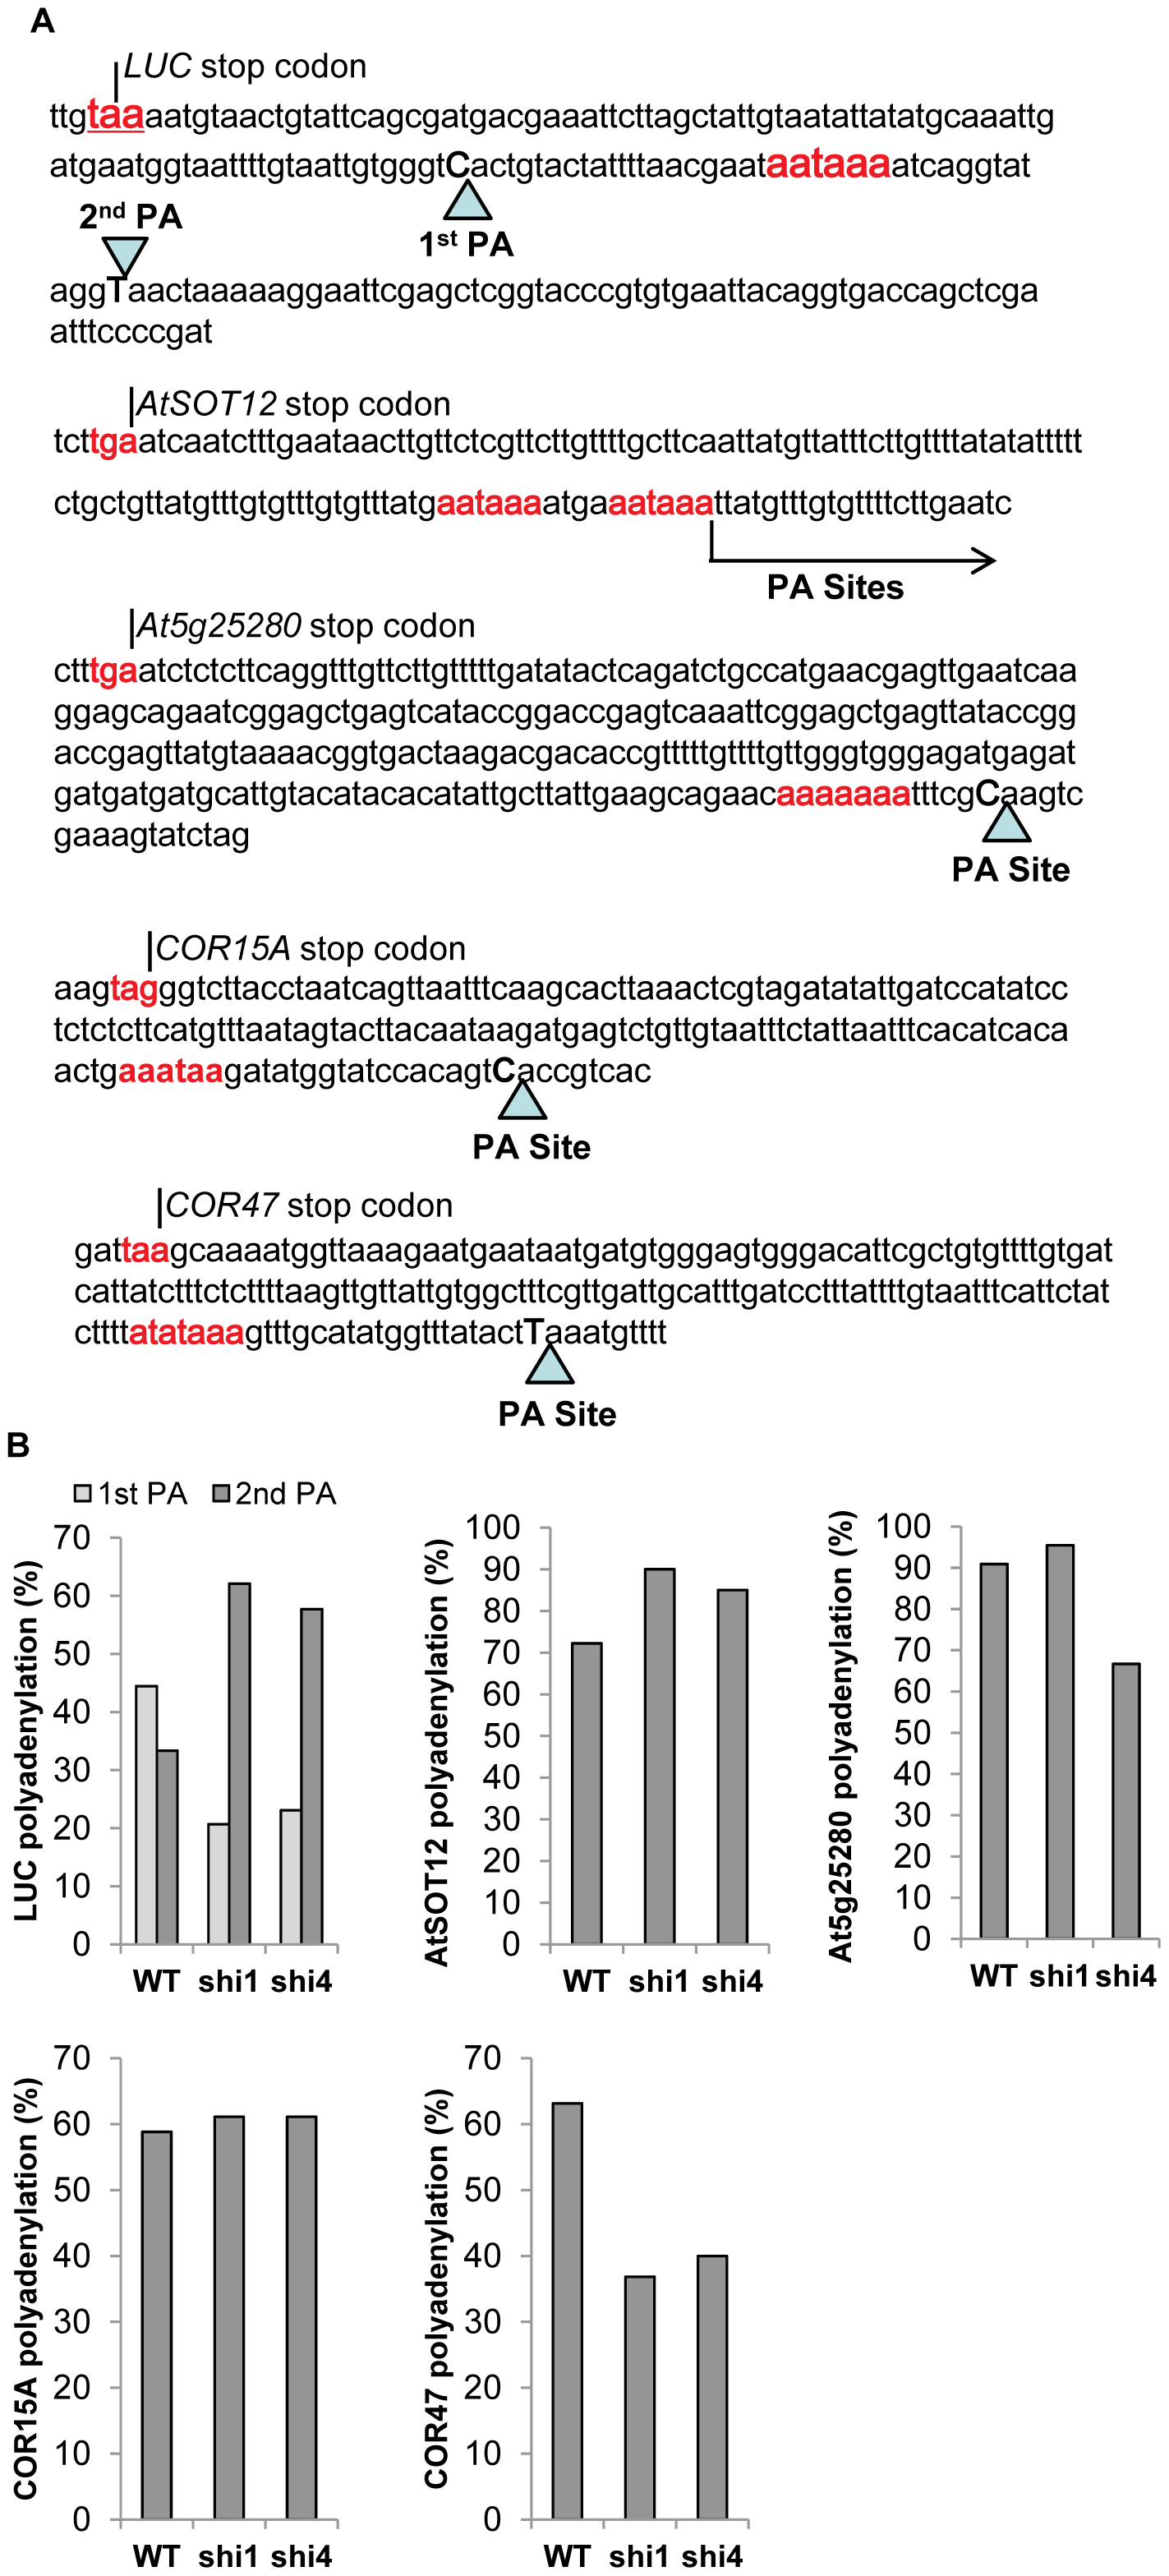 Detection of polyadenylation site selection of the transcripts of <i>LUC</i>, <i>AtSOT12</i>, <i>At5g25280</i>, <i>COR15A</i>, and <i>COR47</i> wild type, <i>shi1</i> and <i>shi4</i> mutants.